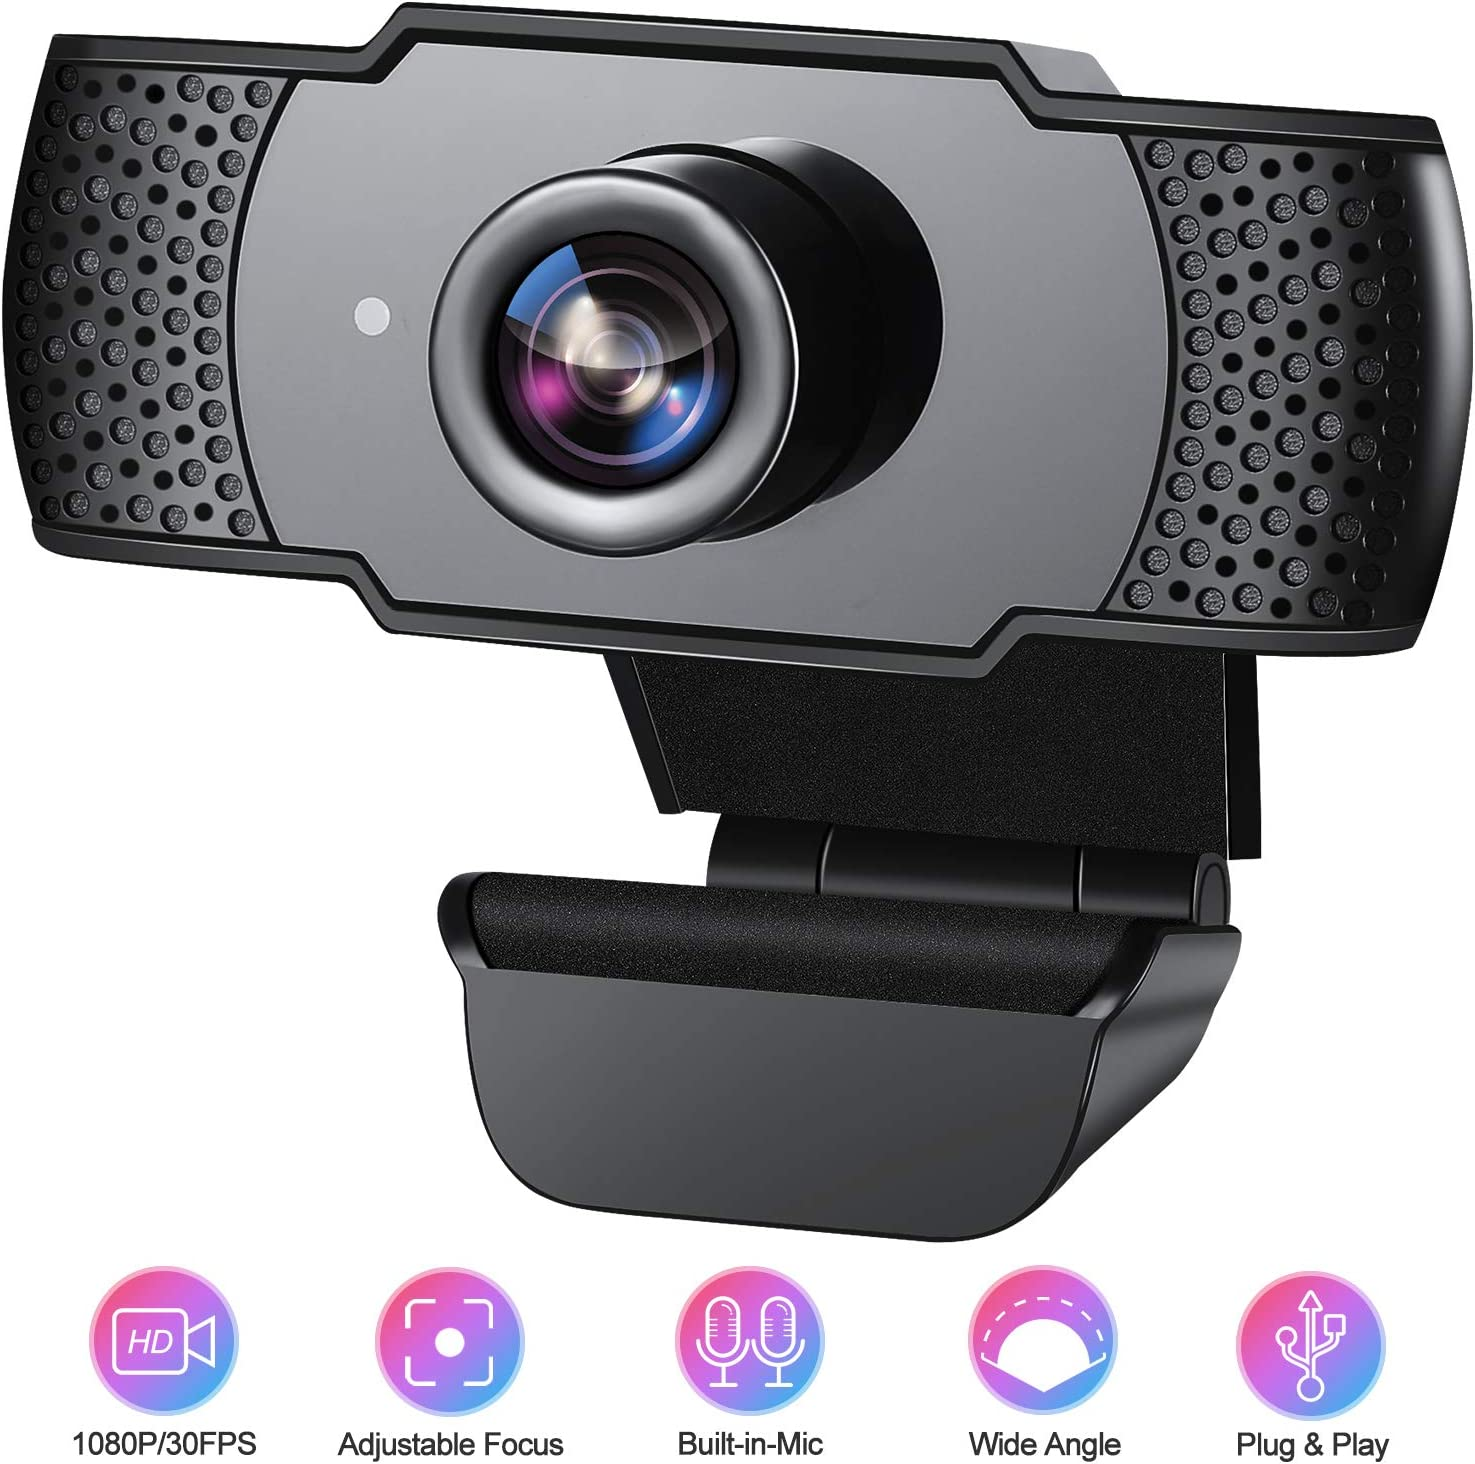 Webcam with Microphone for Desktop, ANVASK 1080P HD Web Cameras for Computers with Plug and Play USB, Camera and Microphone for Zoom/Video Calling Recording/Gaming/Conferencing/Skype Streaming/Laptop